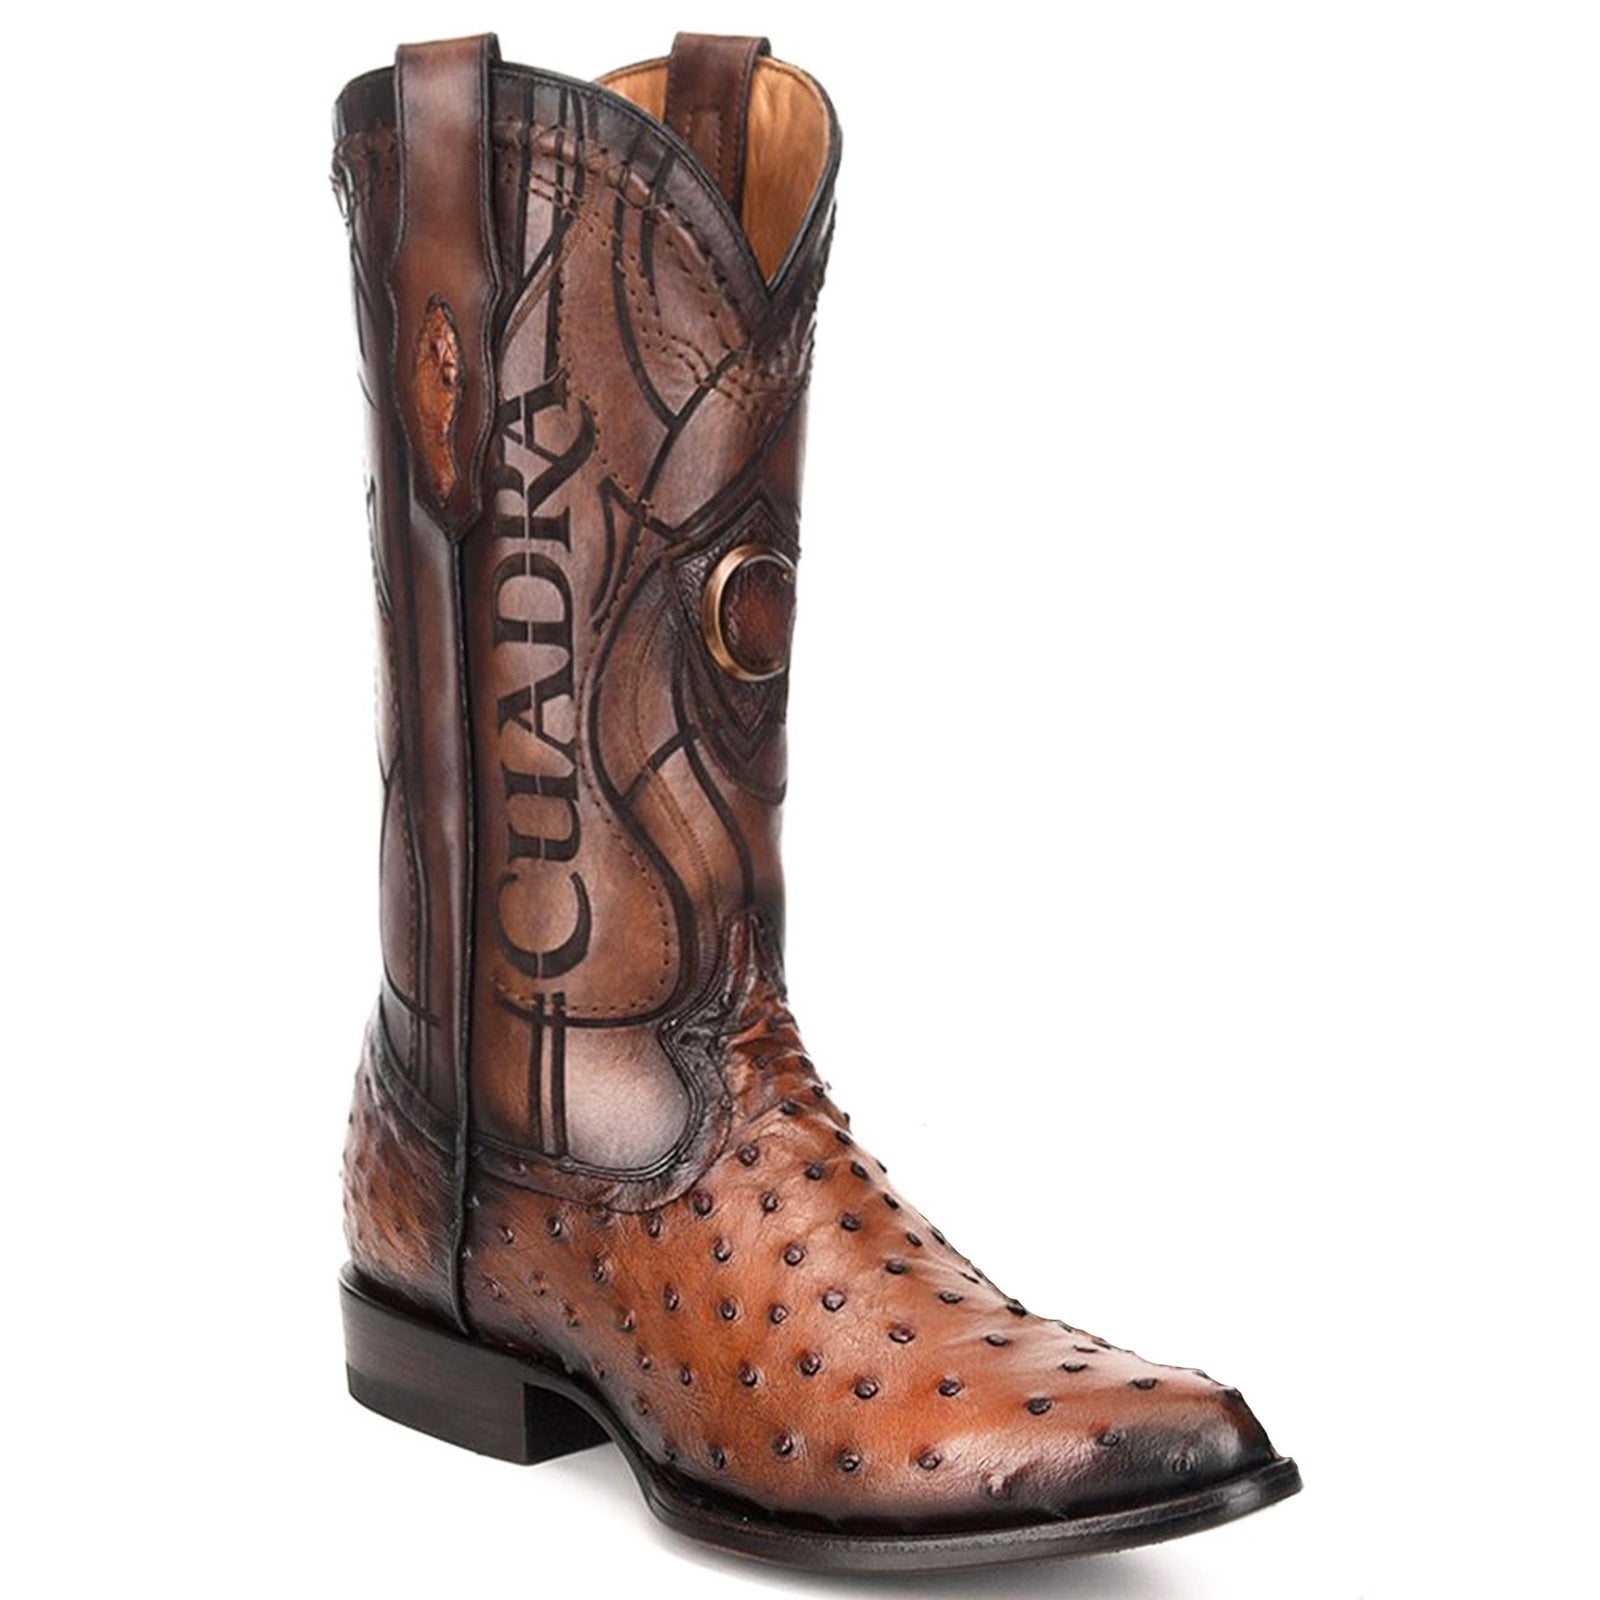 Cuadra Honey Ostrich Cowboy Boots R-Toe